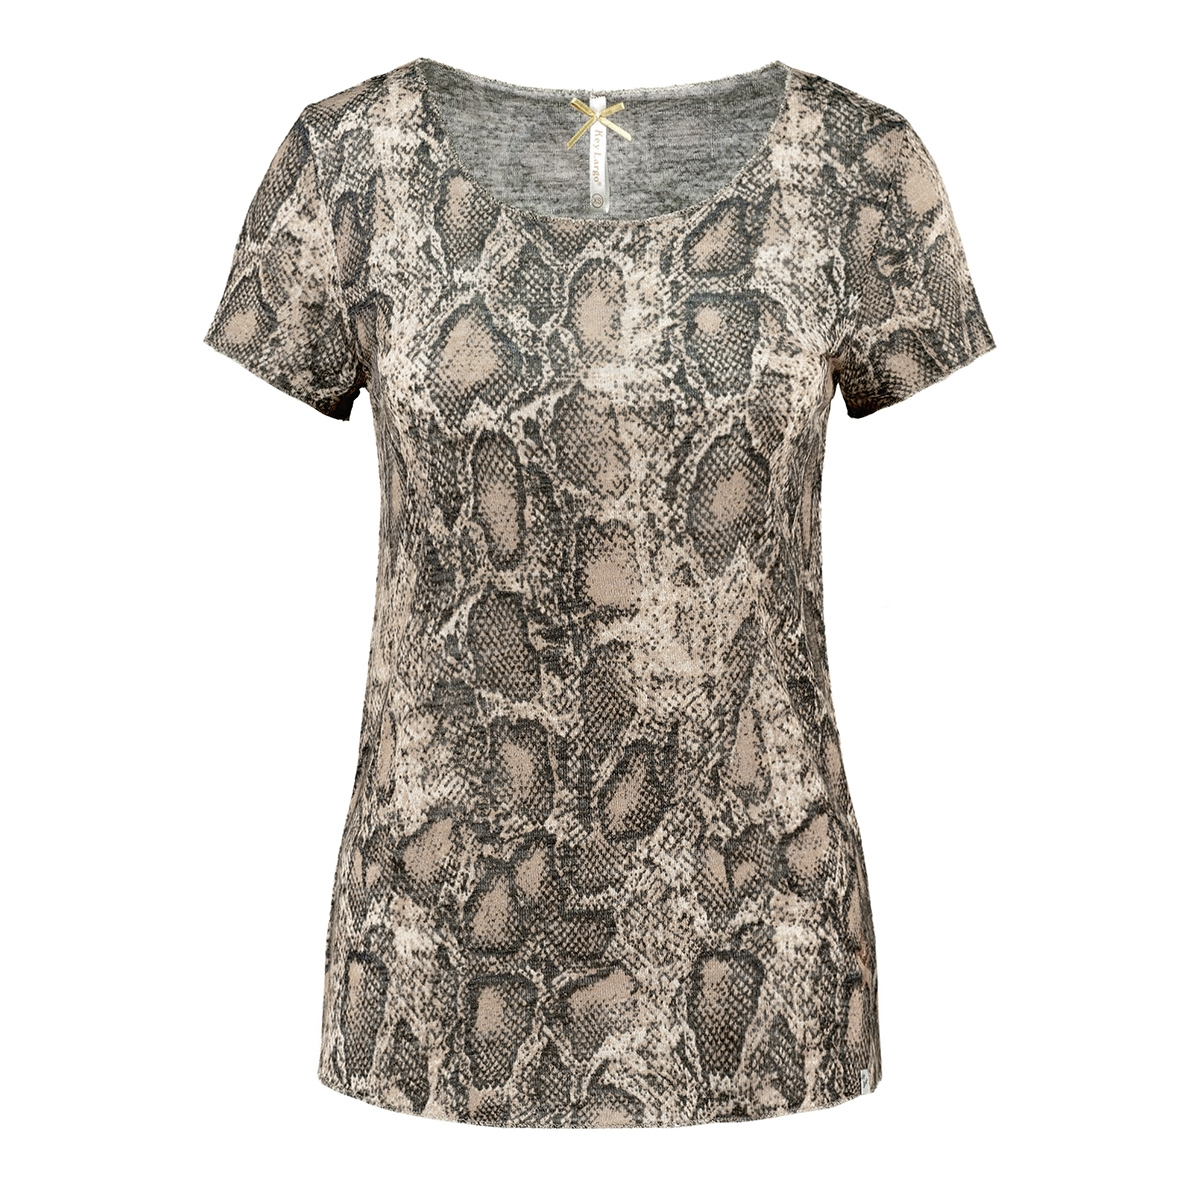 wt00152 wt reptile round key largo t-shirt 1606 mocca brown